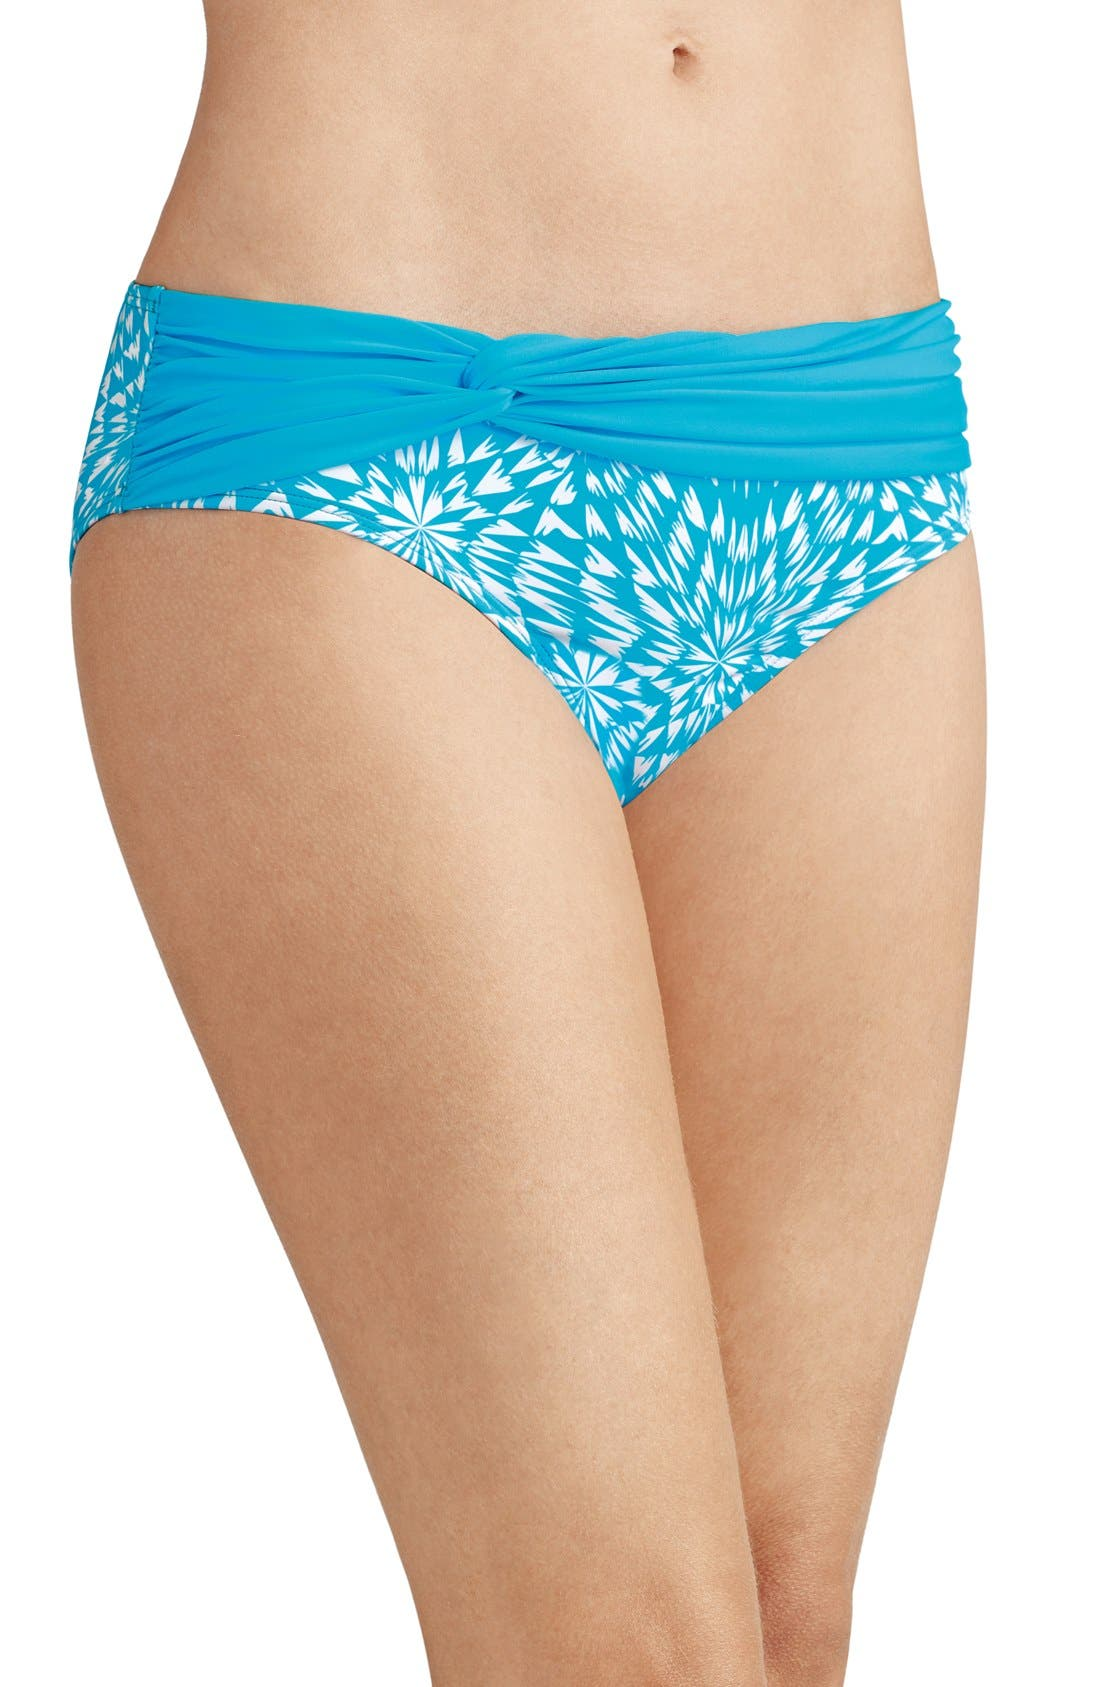 'Hawaii' Swim Briefs,                         Main,                         color, Turquoise/ White